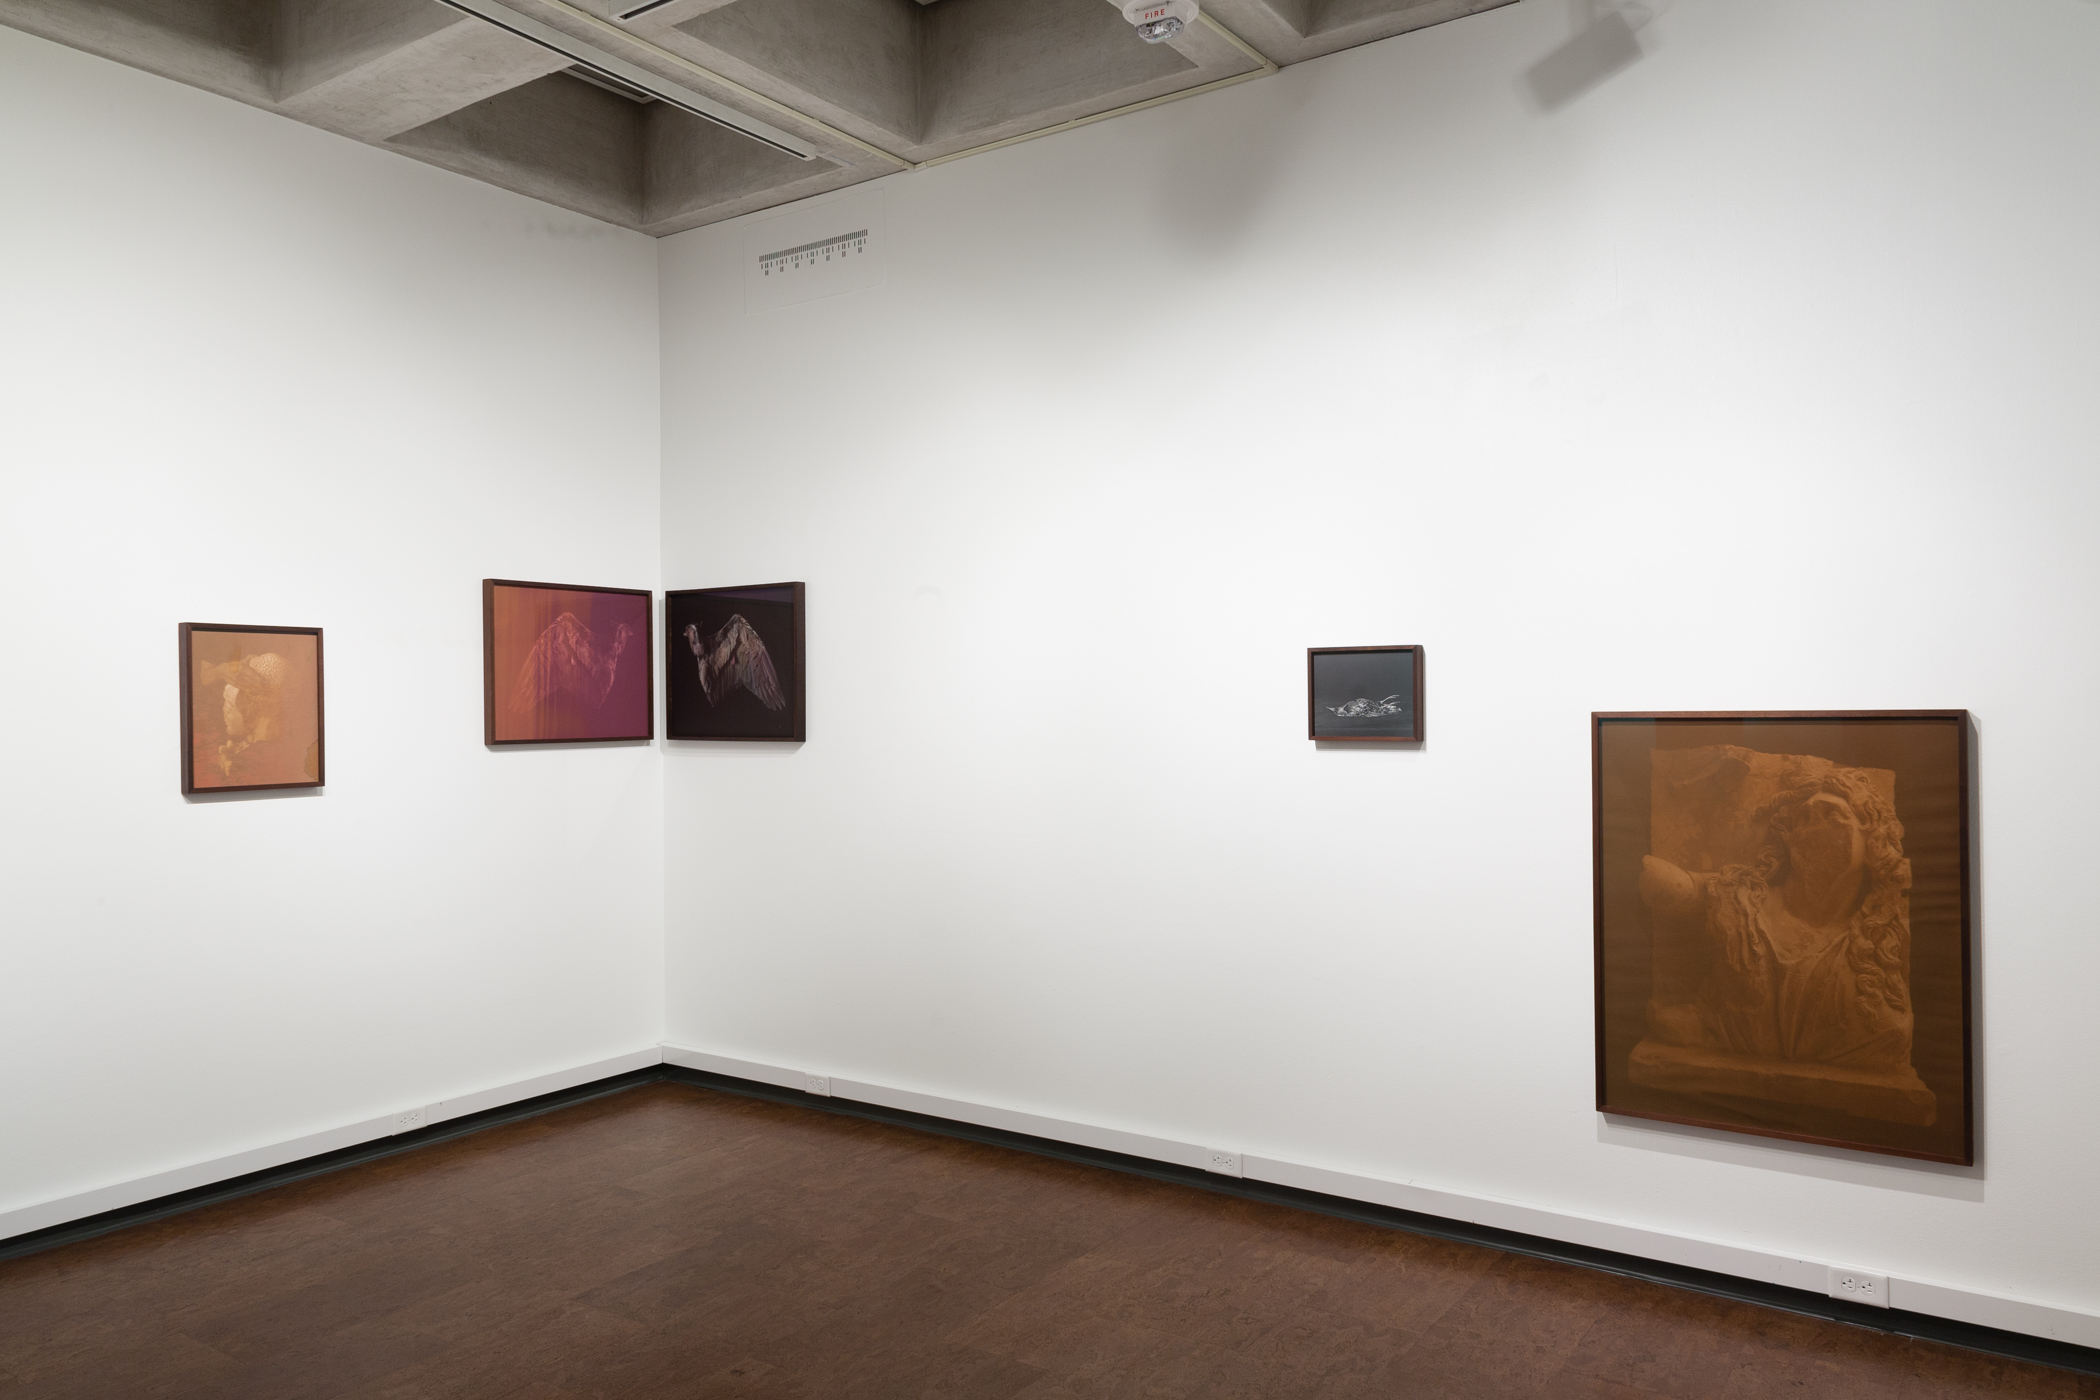 Installation of  Objects & Apparitions  at Handwerker Gallery, Ithaca College, Ithaca, NY